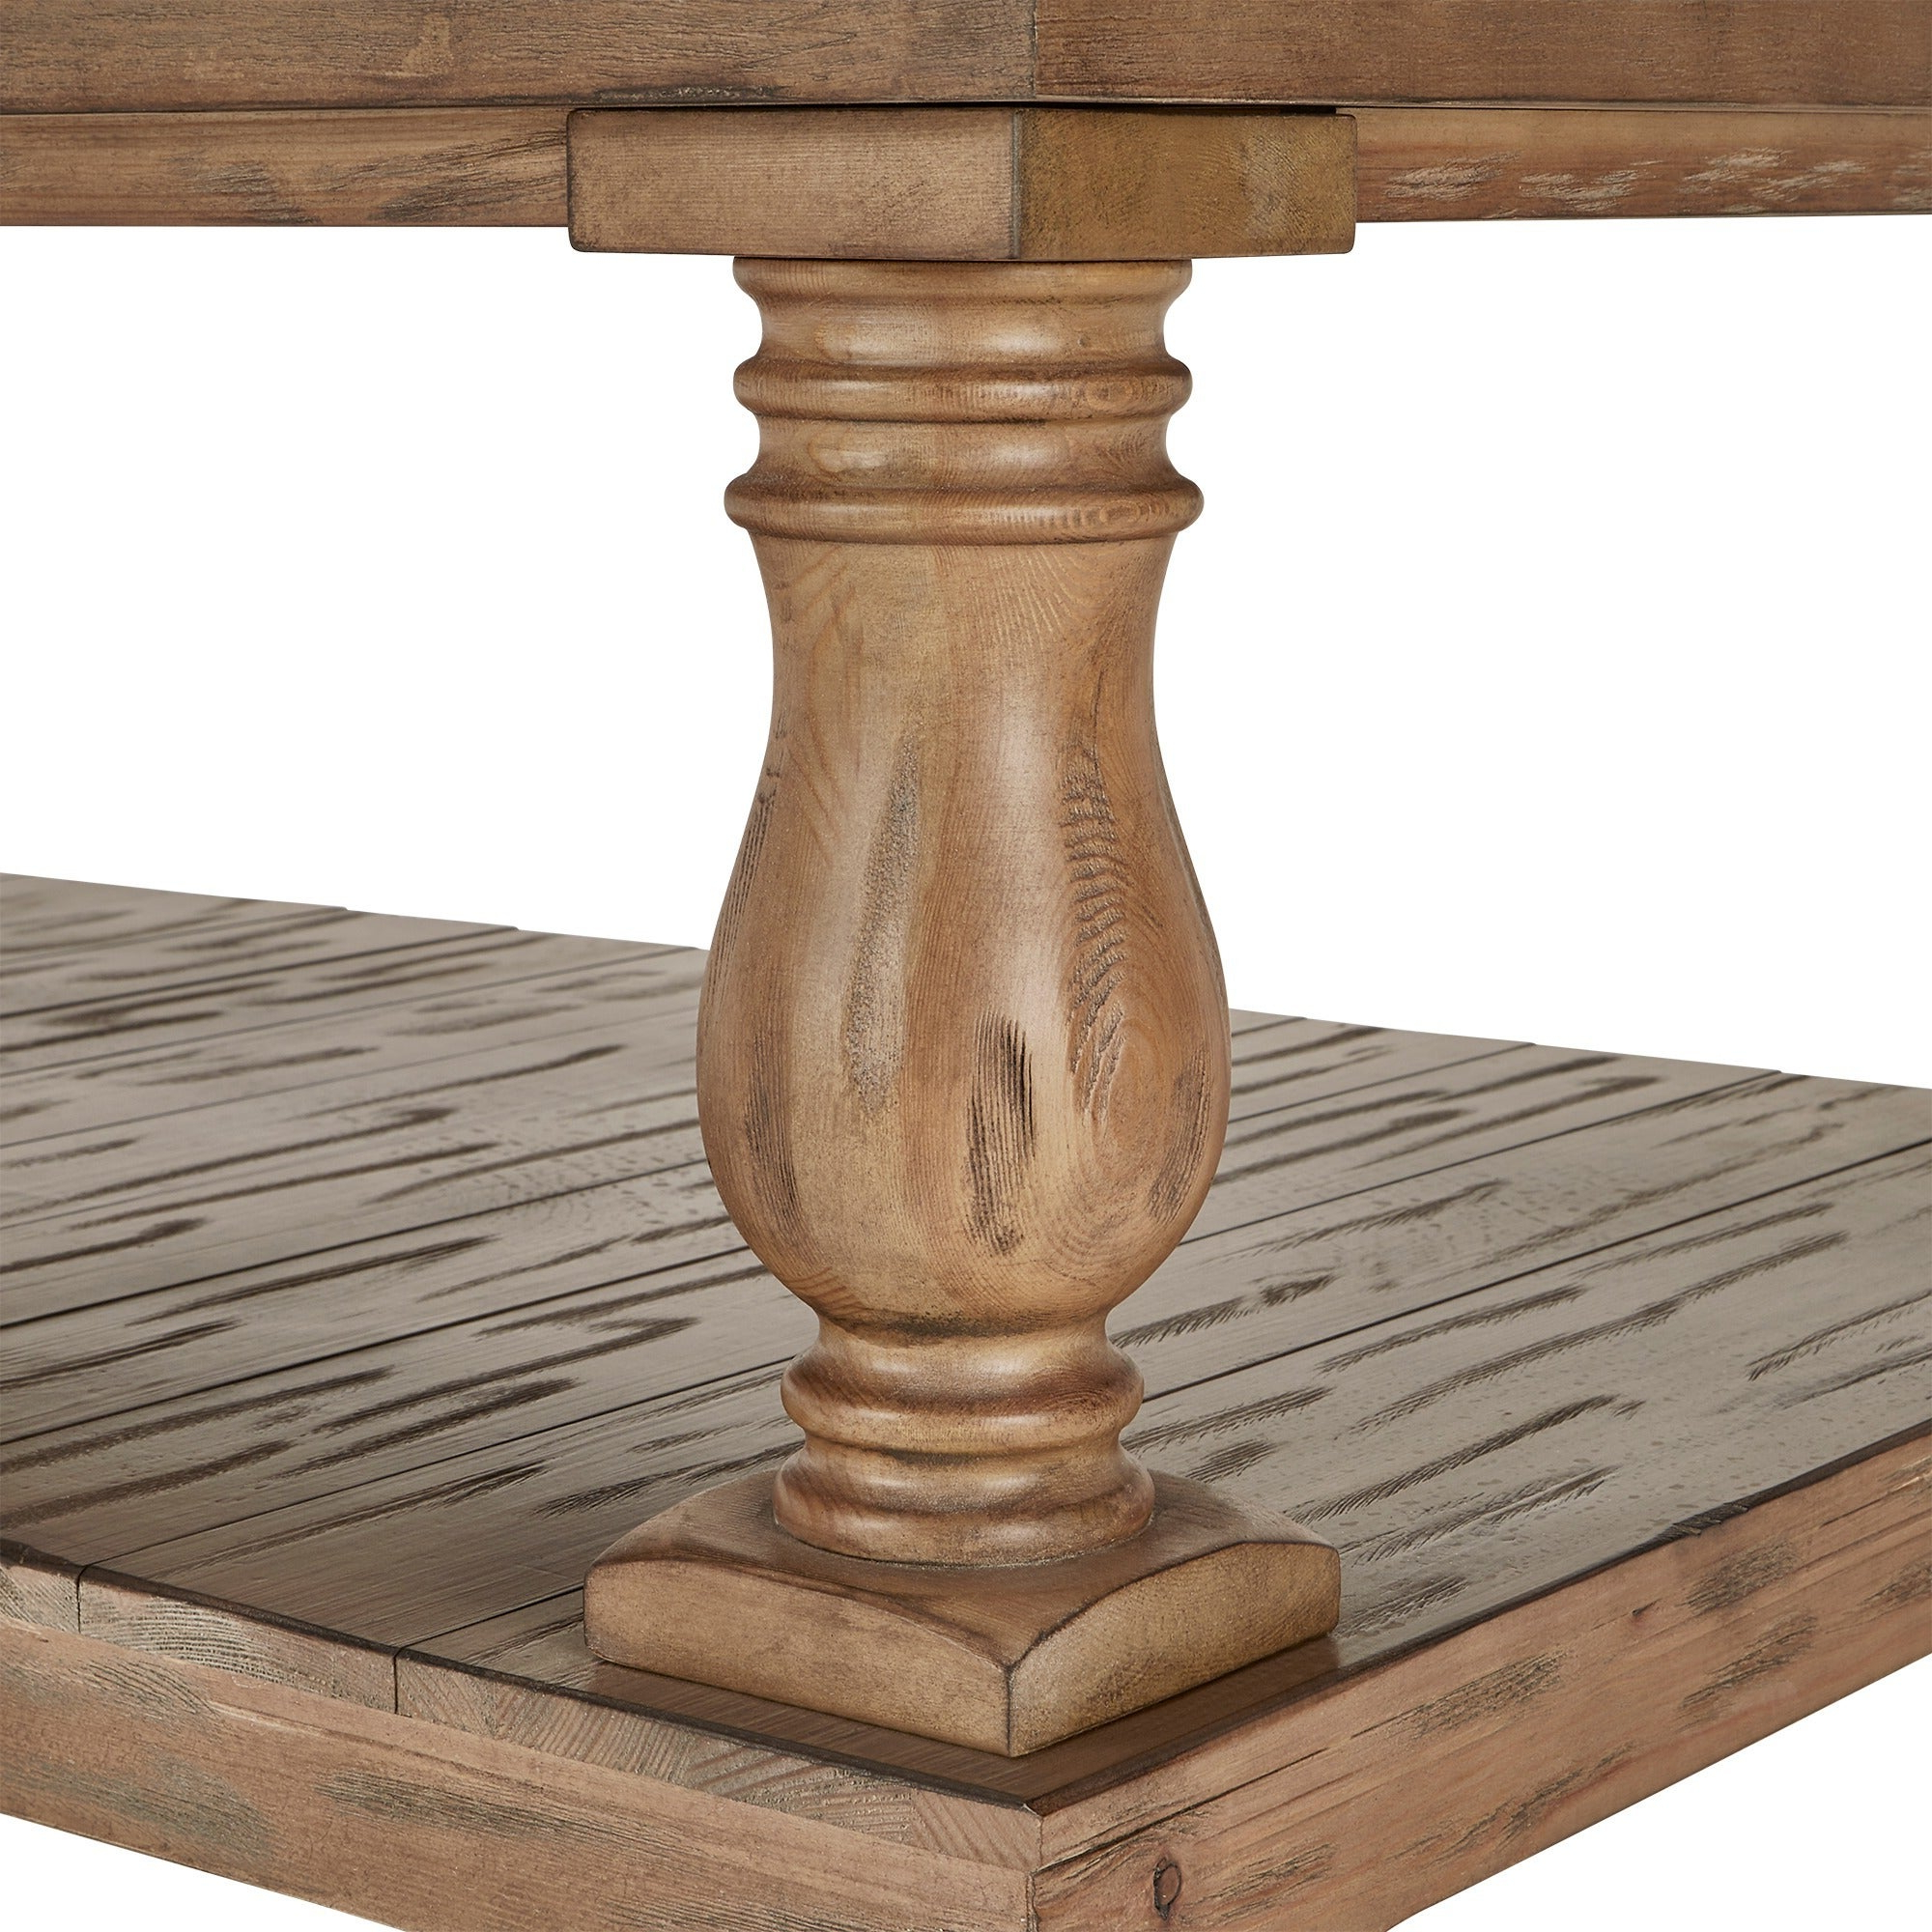 Edmaire Rustic Pine Baluster 55 Inch Coffee Tableinspire Q Artisan With Regard To Current Edmaire Rustic Pine Baluster Coffee Tables (View 9 of 20)